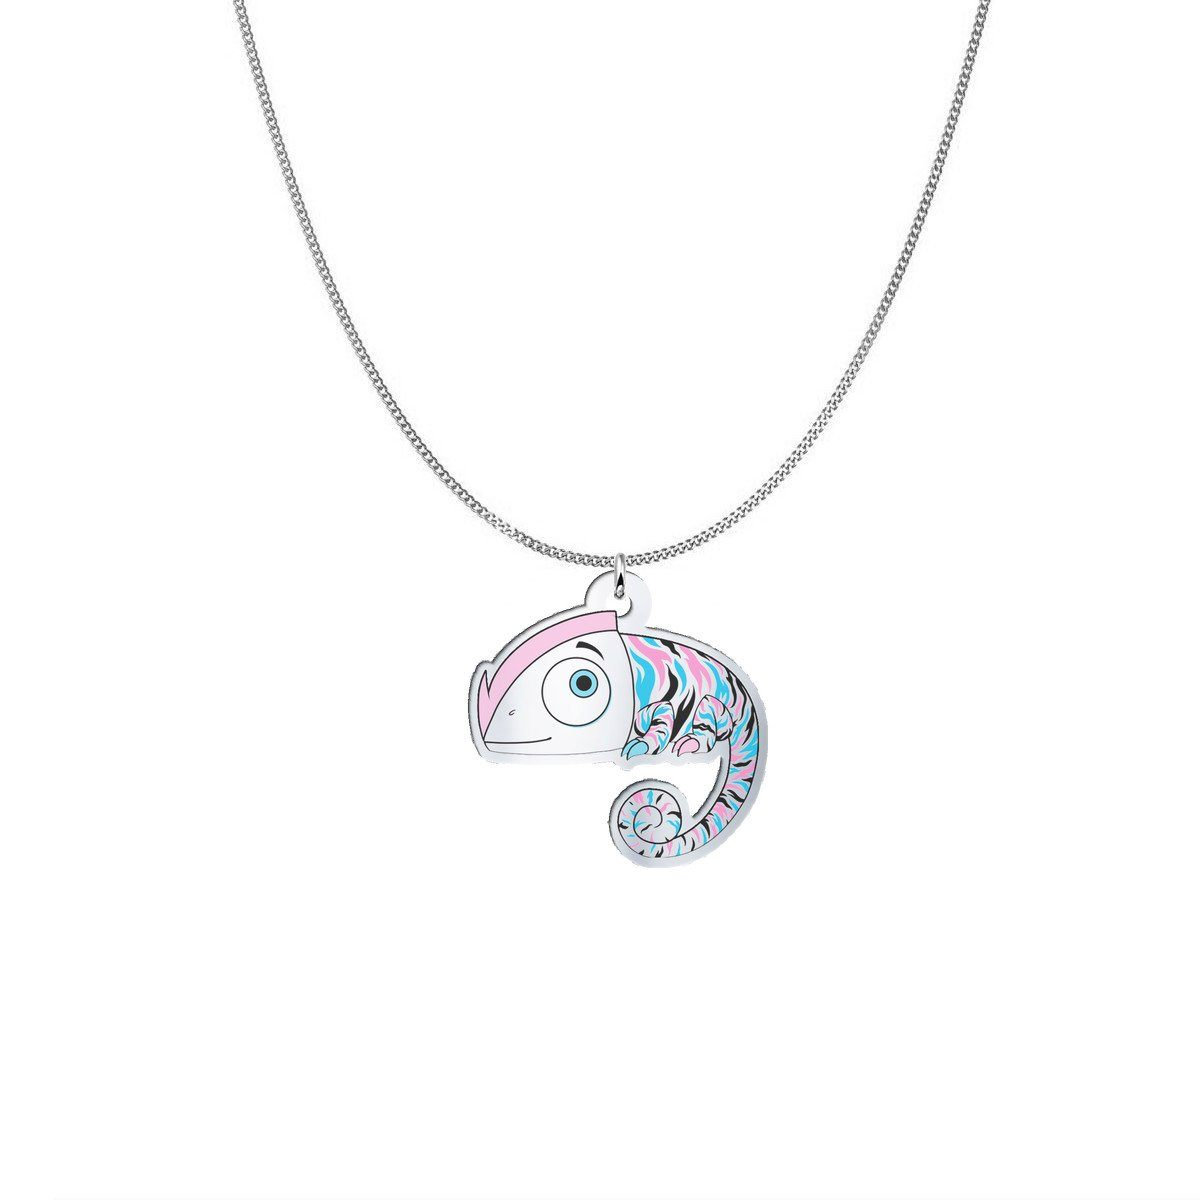 Agnes the Undiagnosed Monster Silver Necklace - The Unchargeables